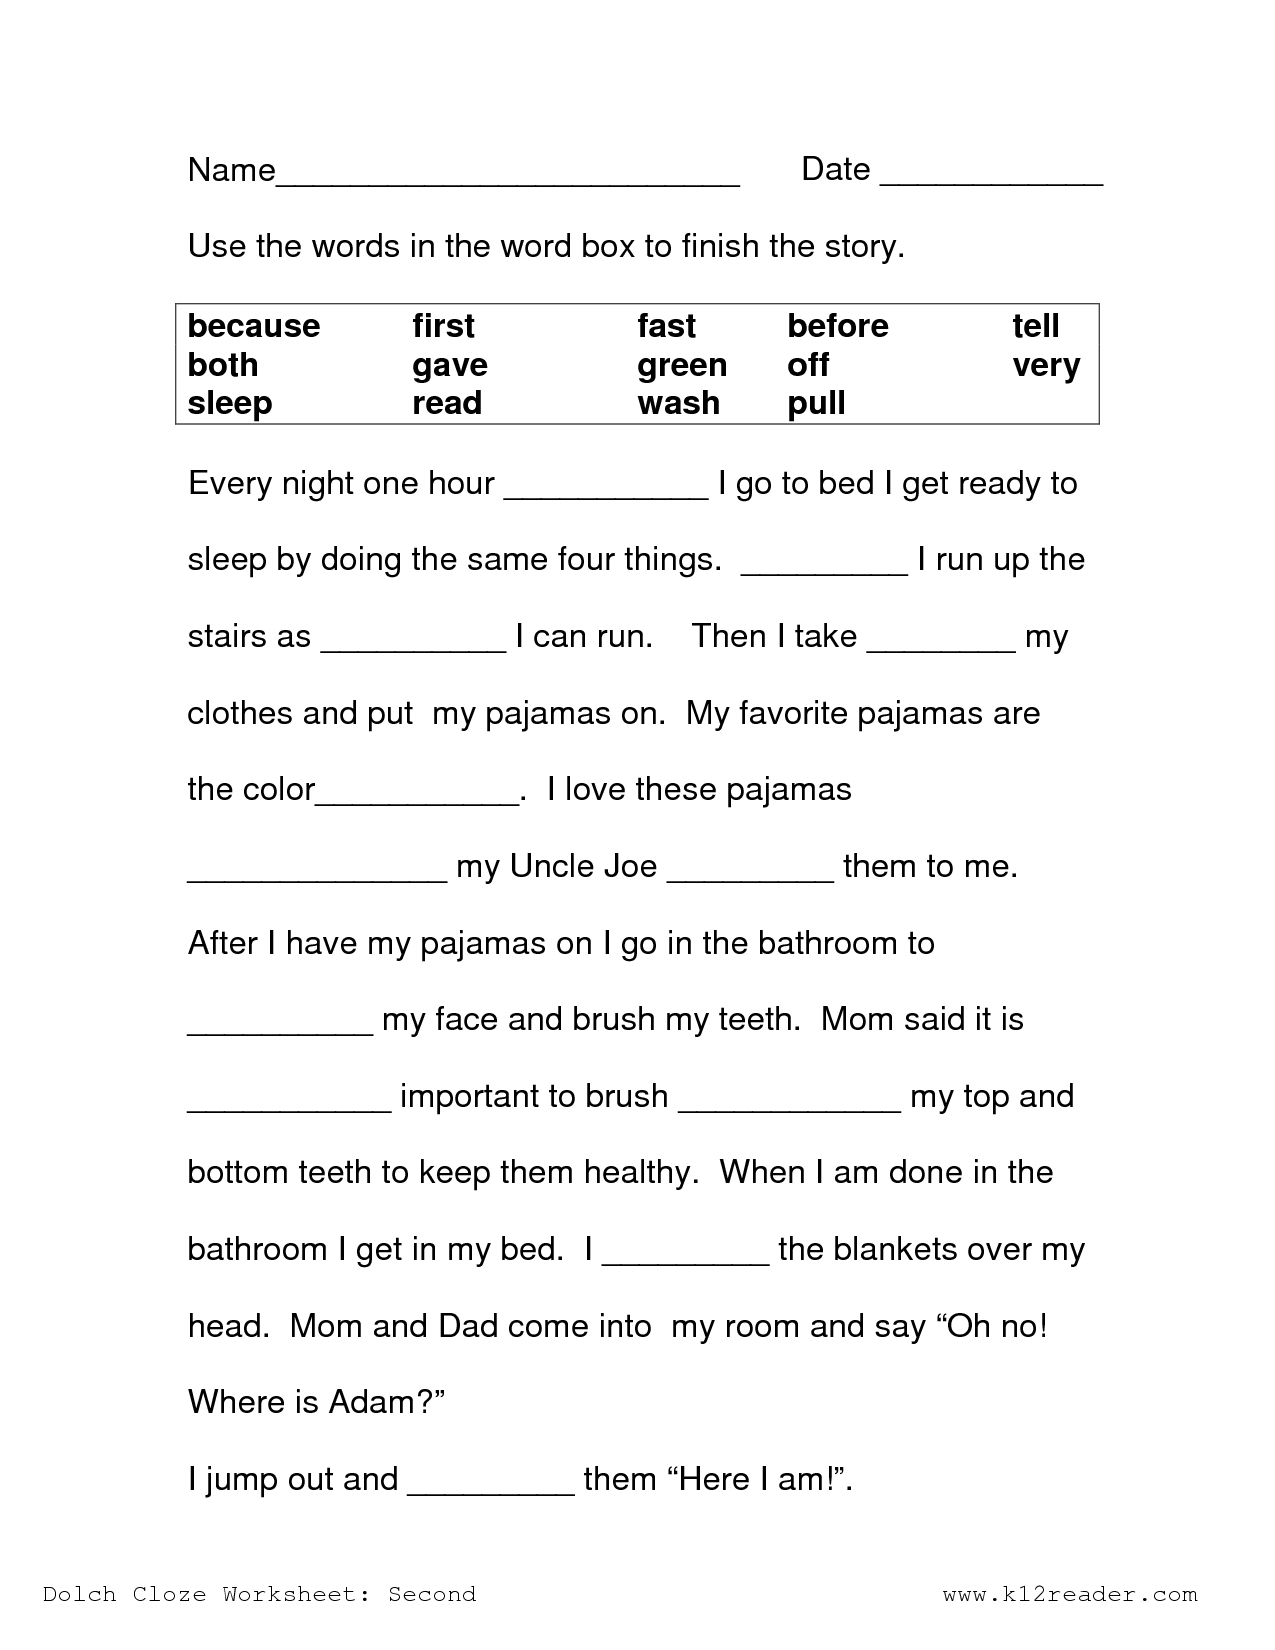 Free Printable Reading Comprehension Worksheets 3Rd Grade To Print - Third Grade Reading Worksheets Free Printable